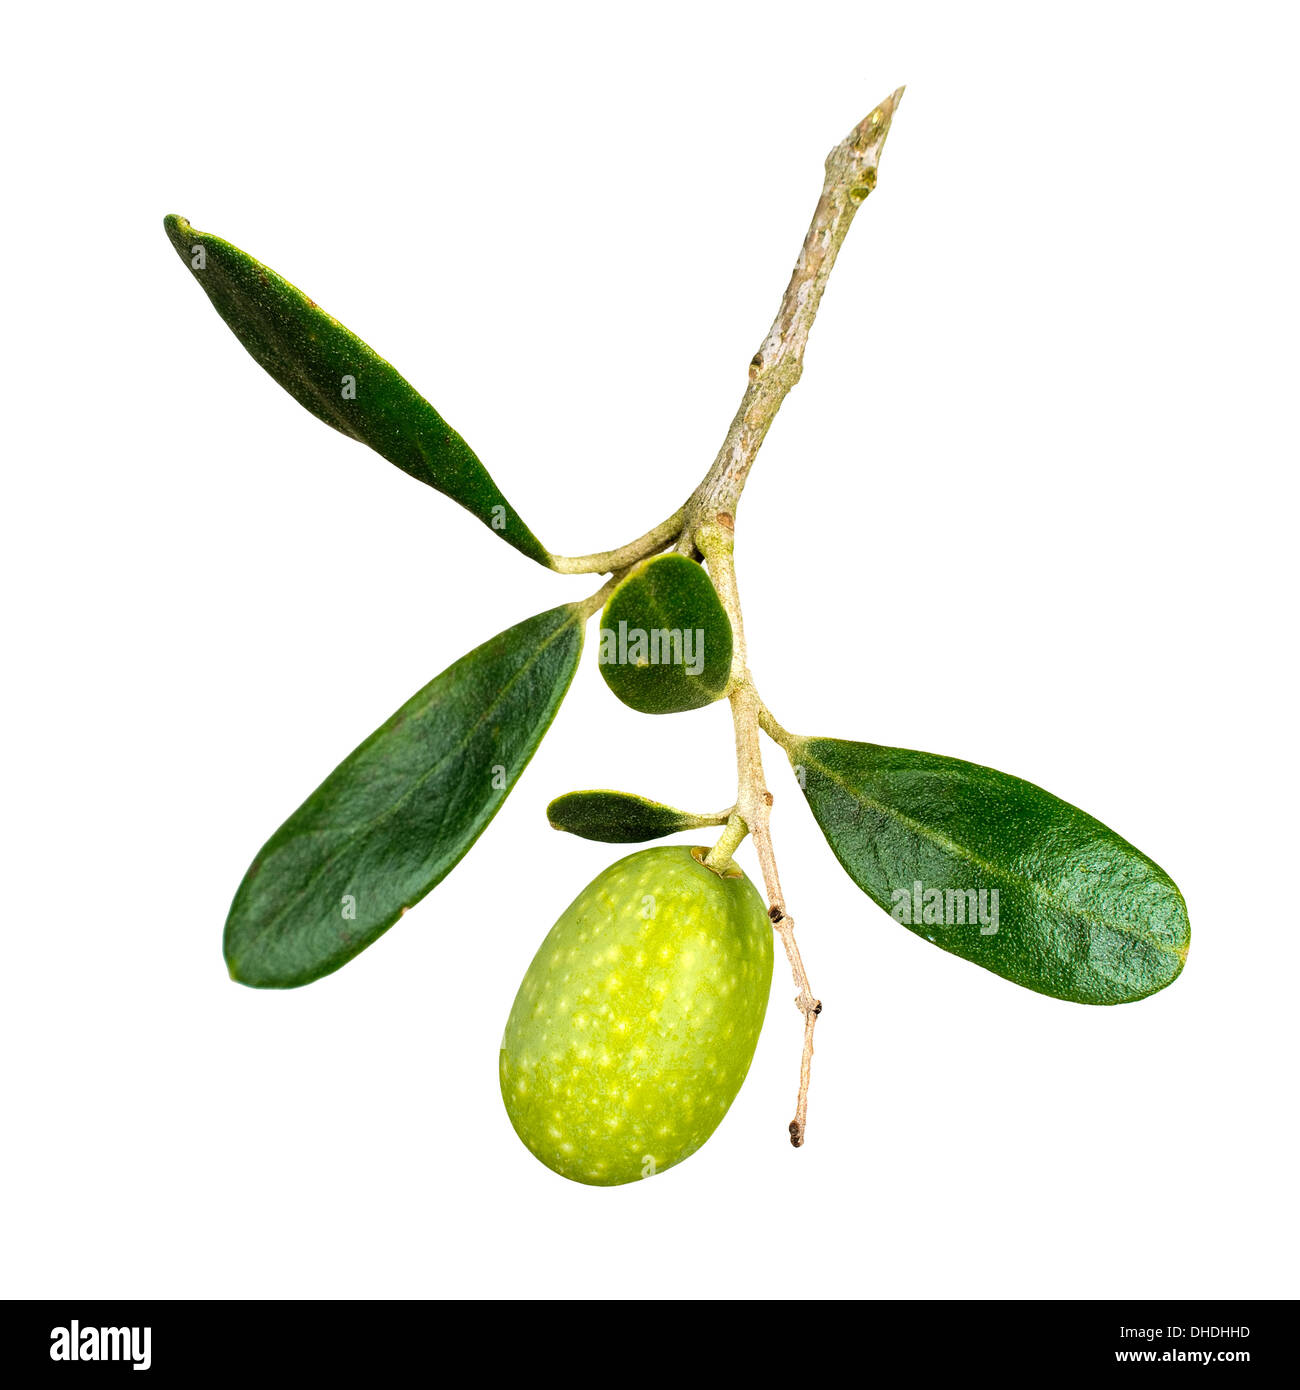 Natural ripening olive. - Stock Image